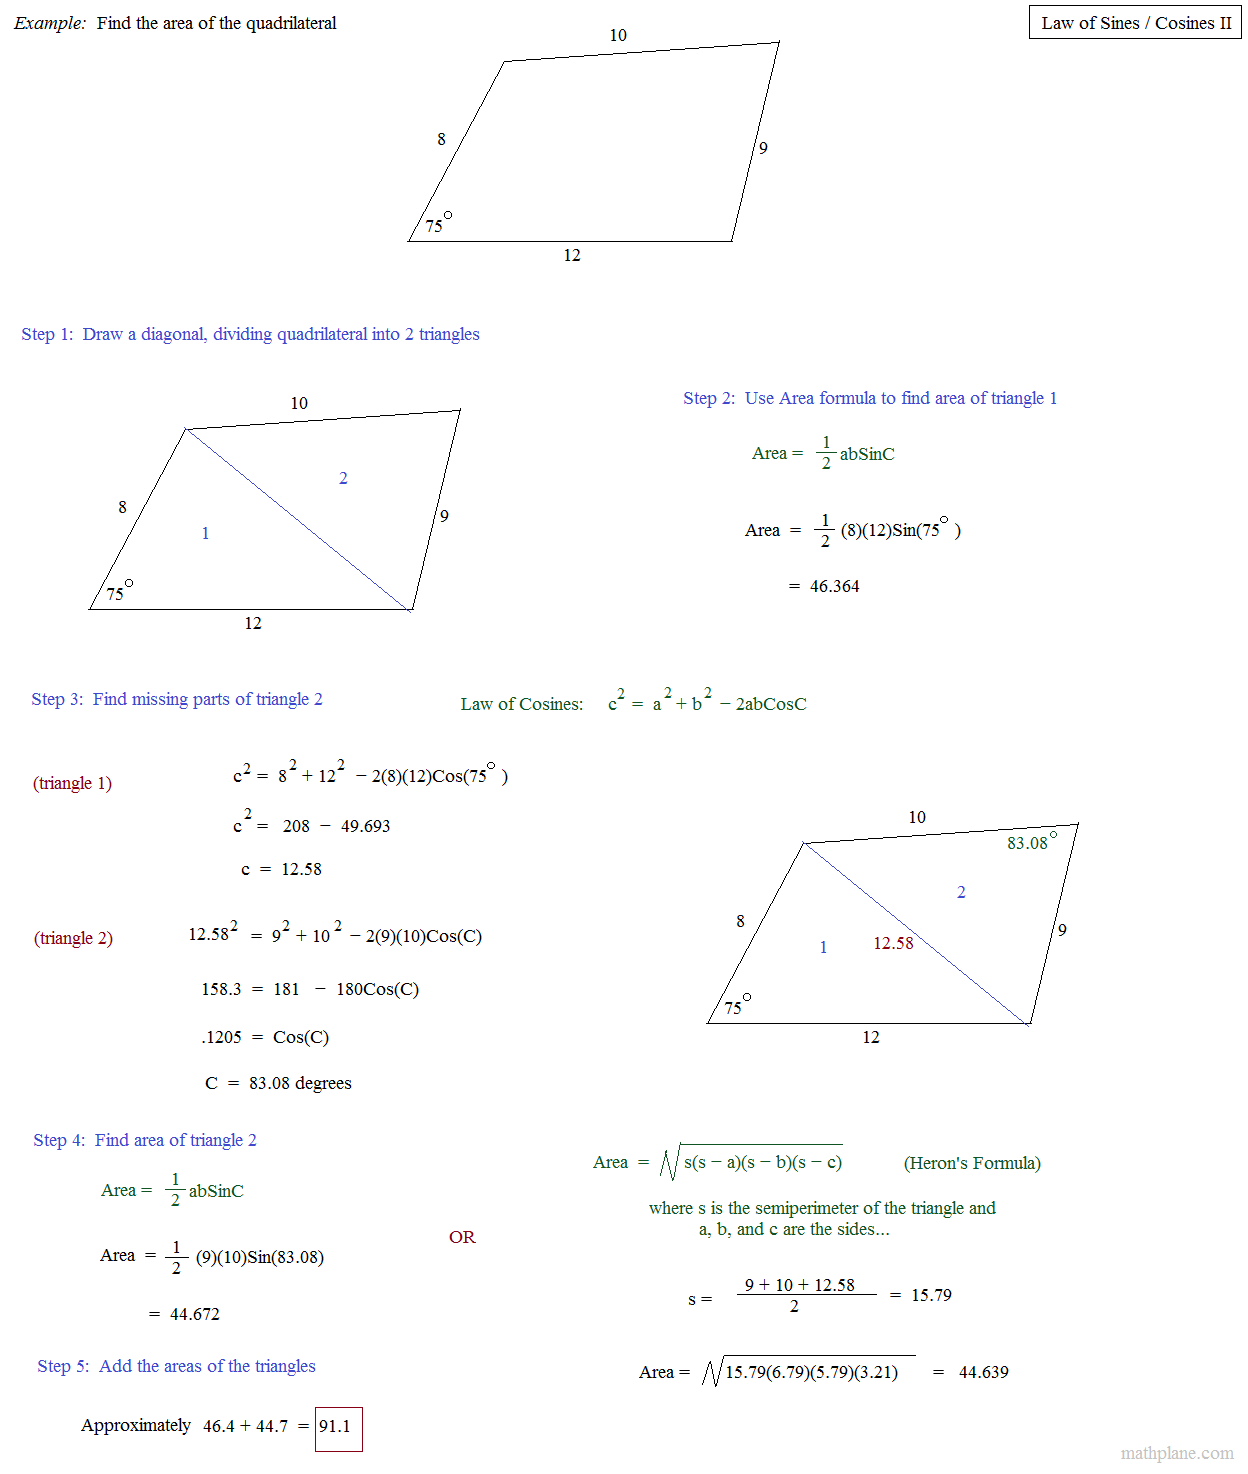 Math Plane Law of Sines and Cosines II – Law of Sines Worksheet